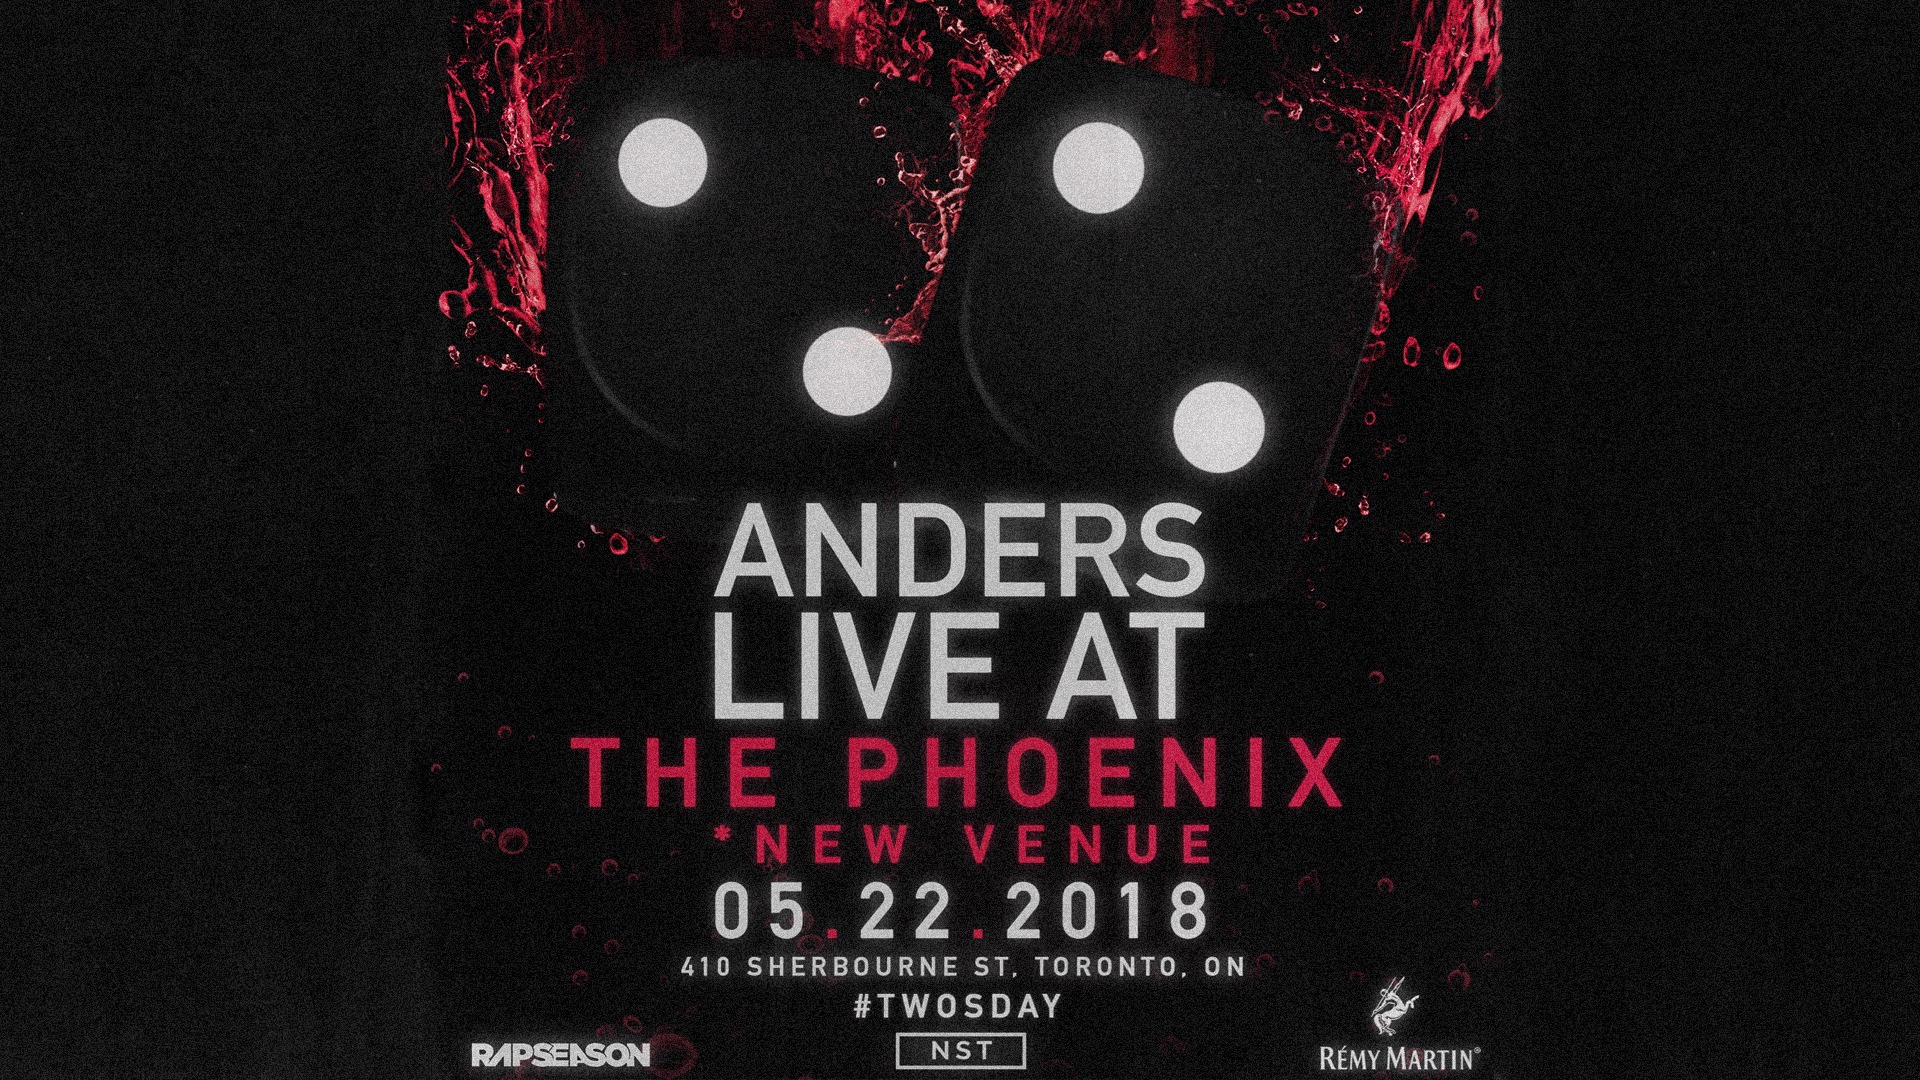 Listen to win 2 Tickets to Anders Live at the Phoenix